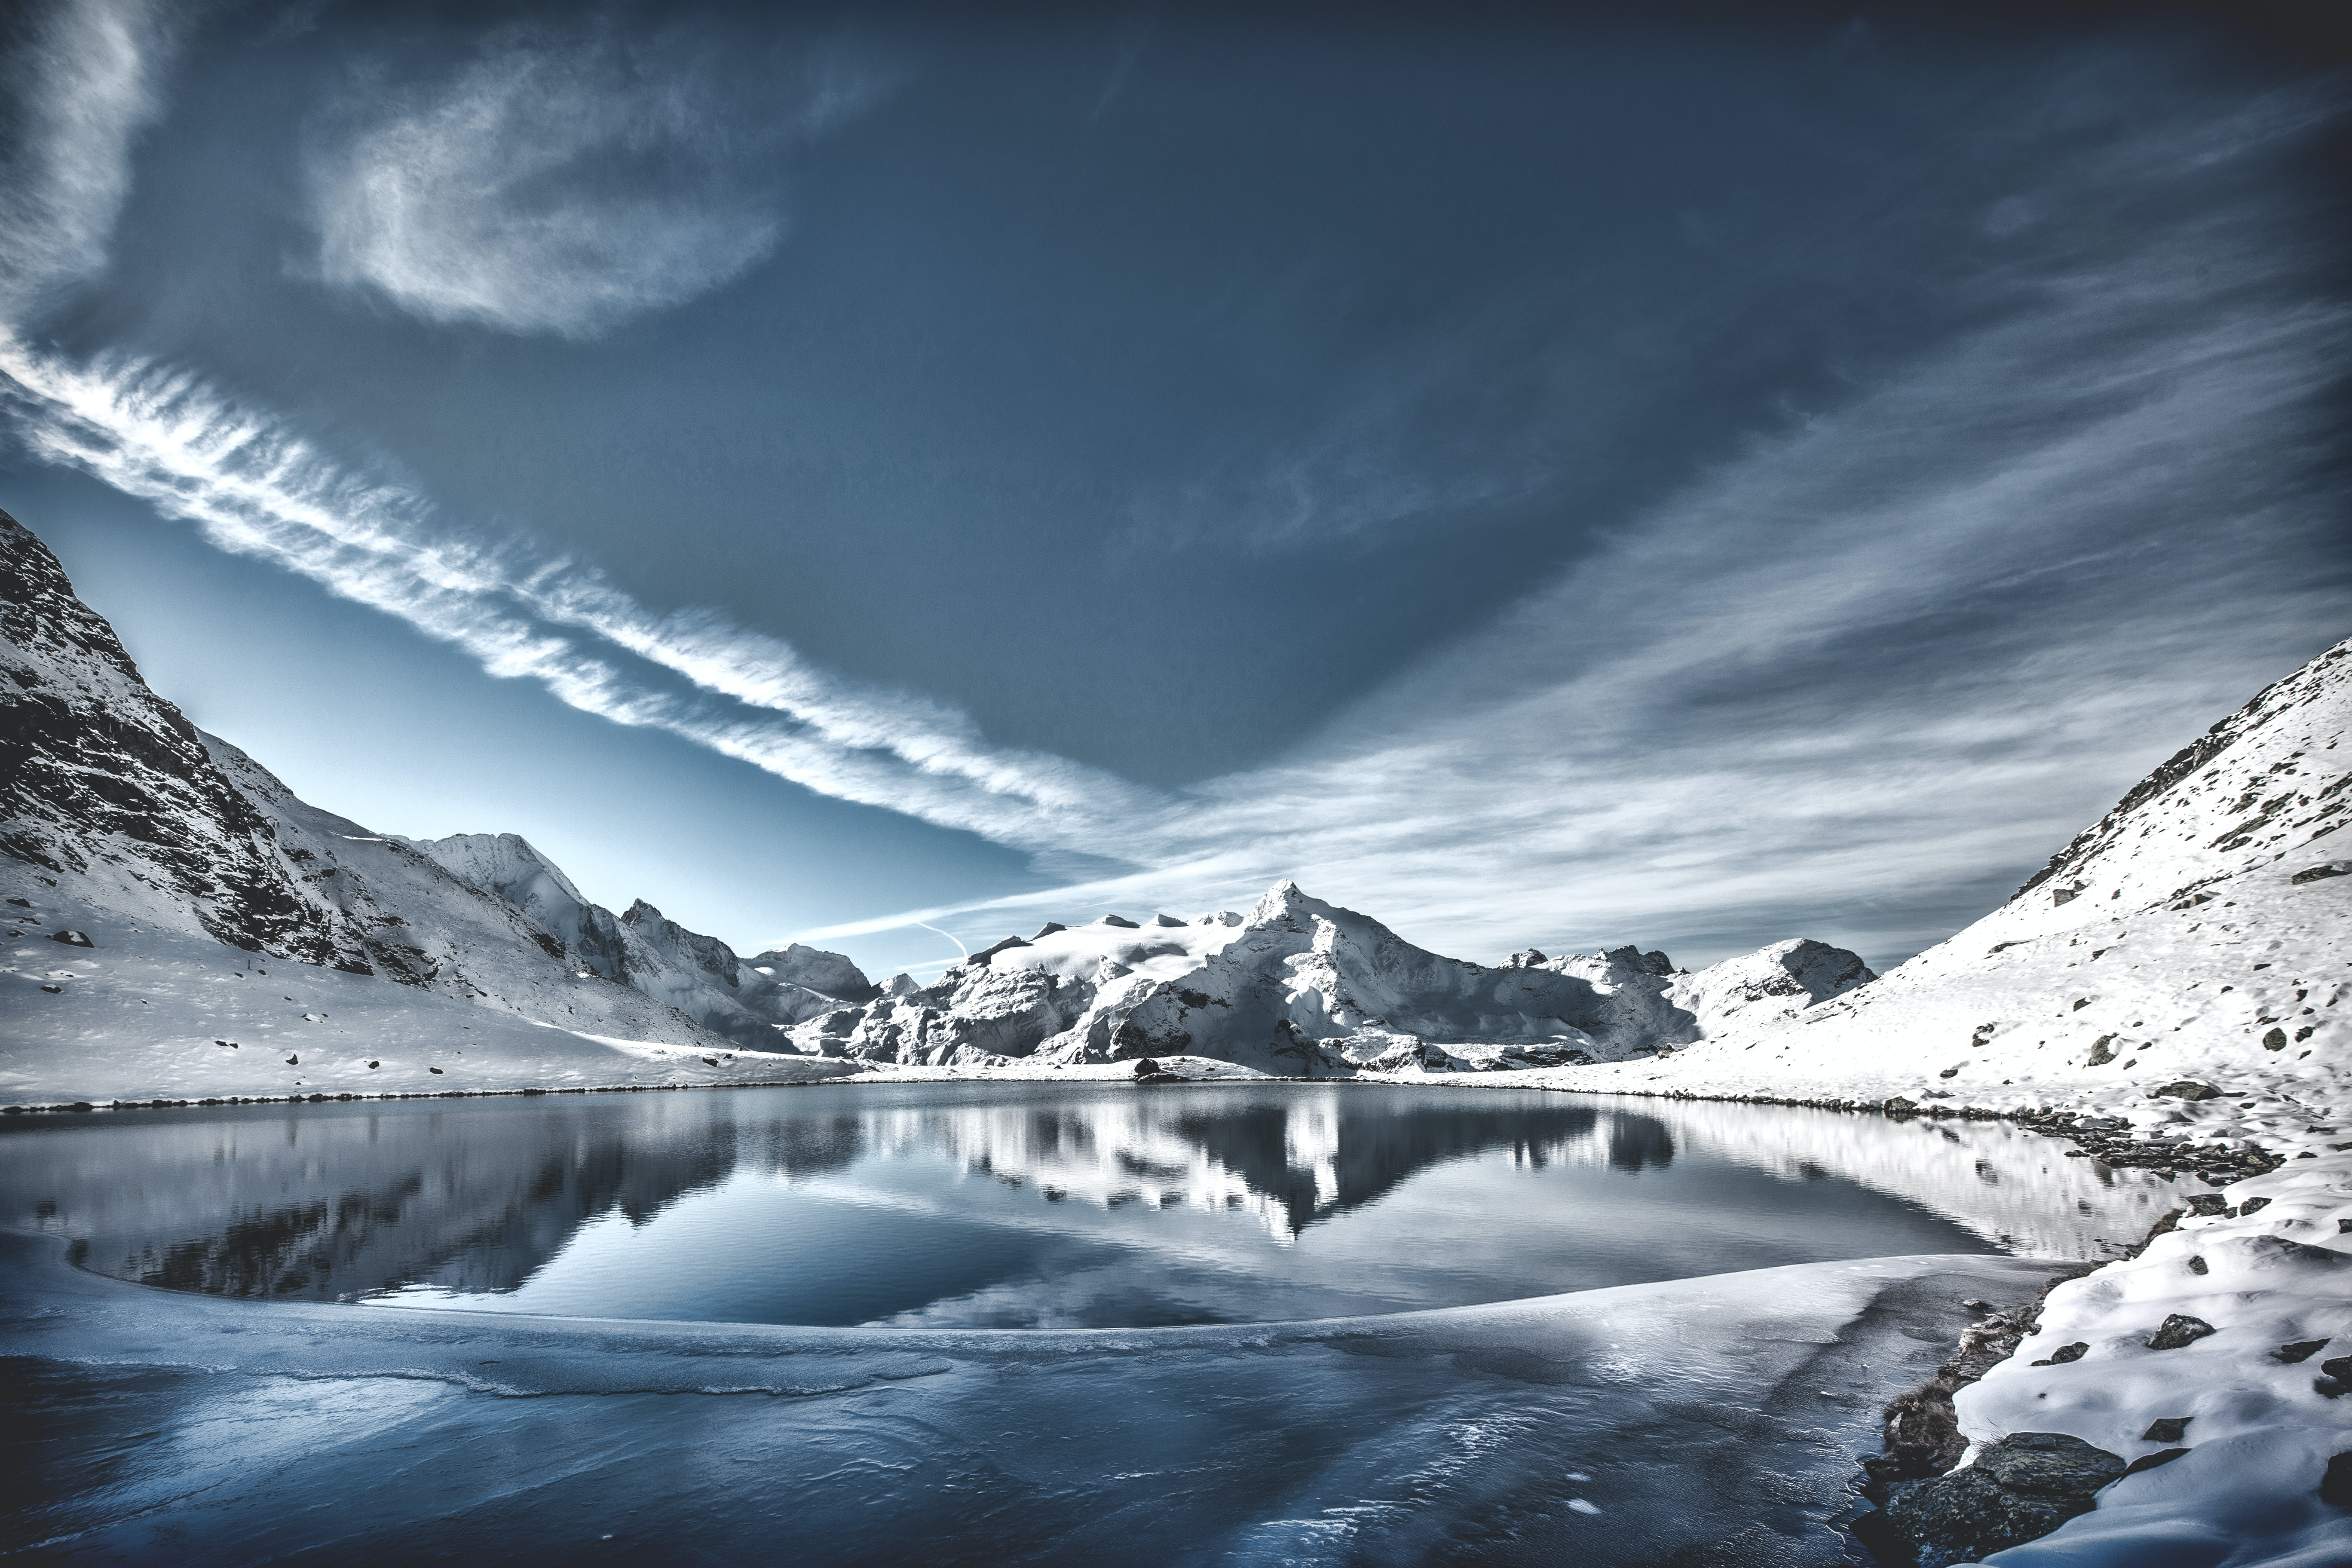 body of water between mountain range covered in snow under gray sky and white clouds at daytime